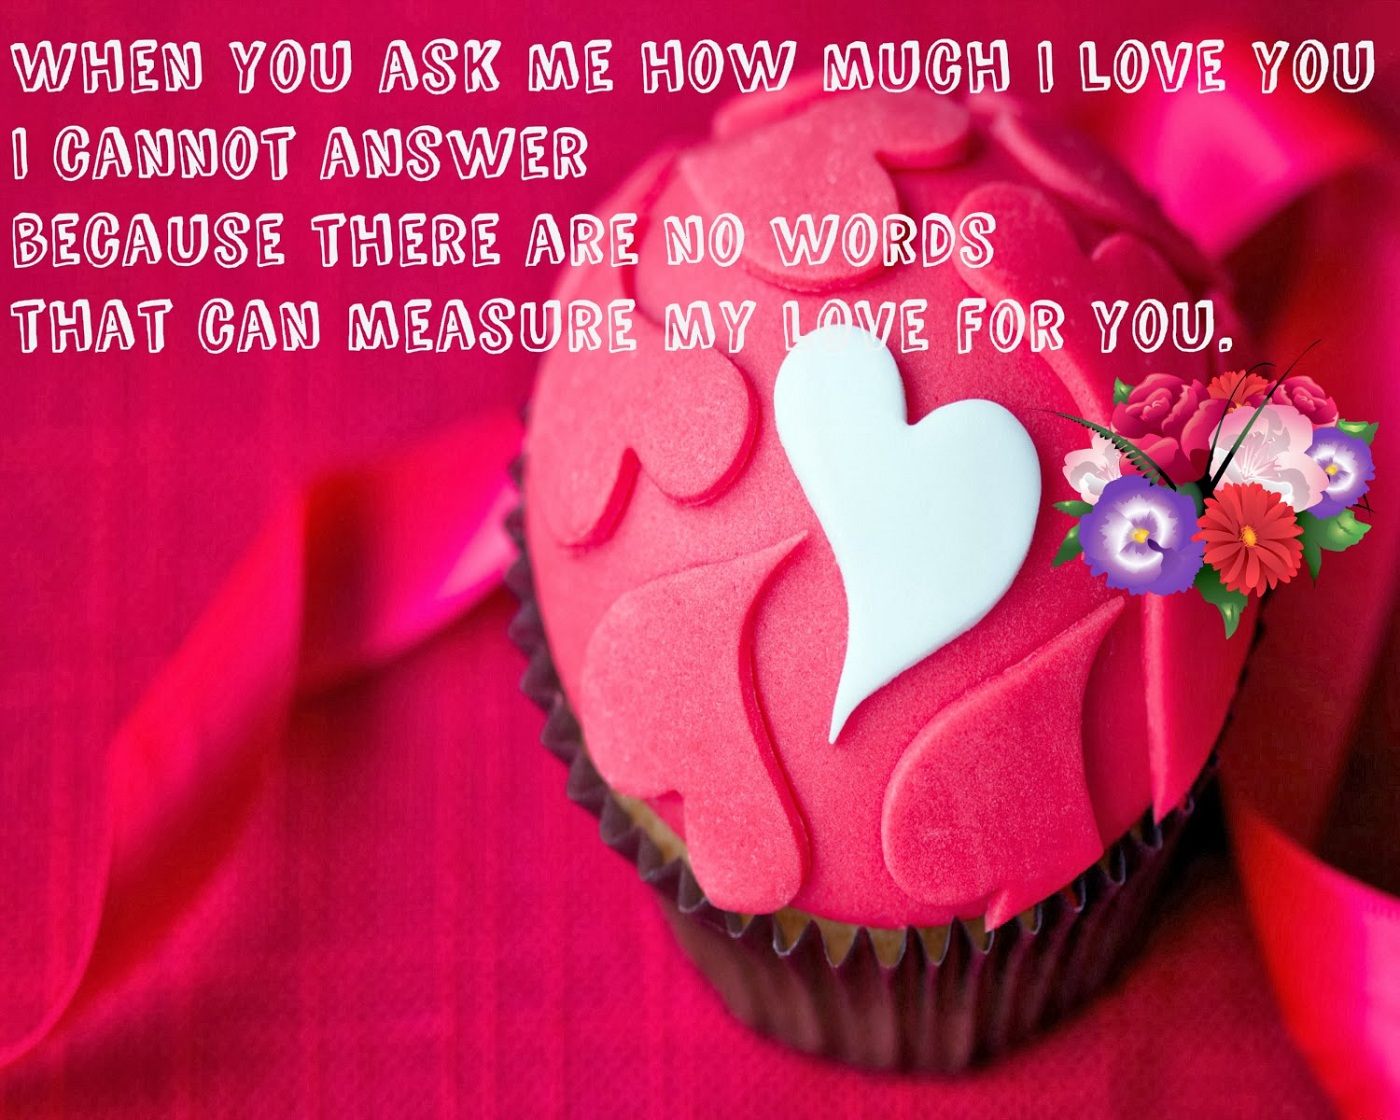 happy valentines day whatsapp status facebook best quotes wishes images wallpapers greetings cards sayings poems parade - Cute Valentines Day Sayings For Friends